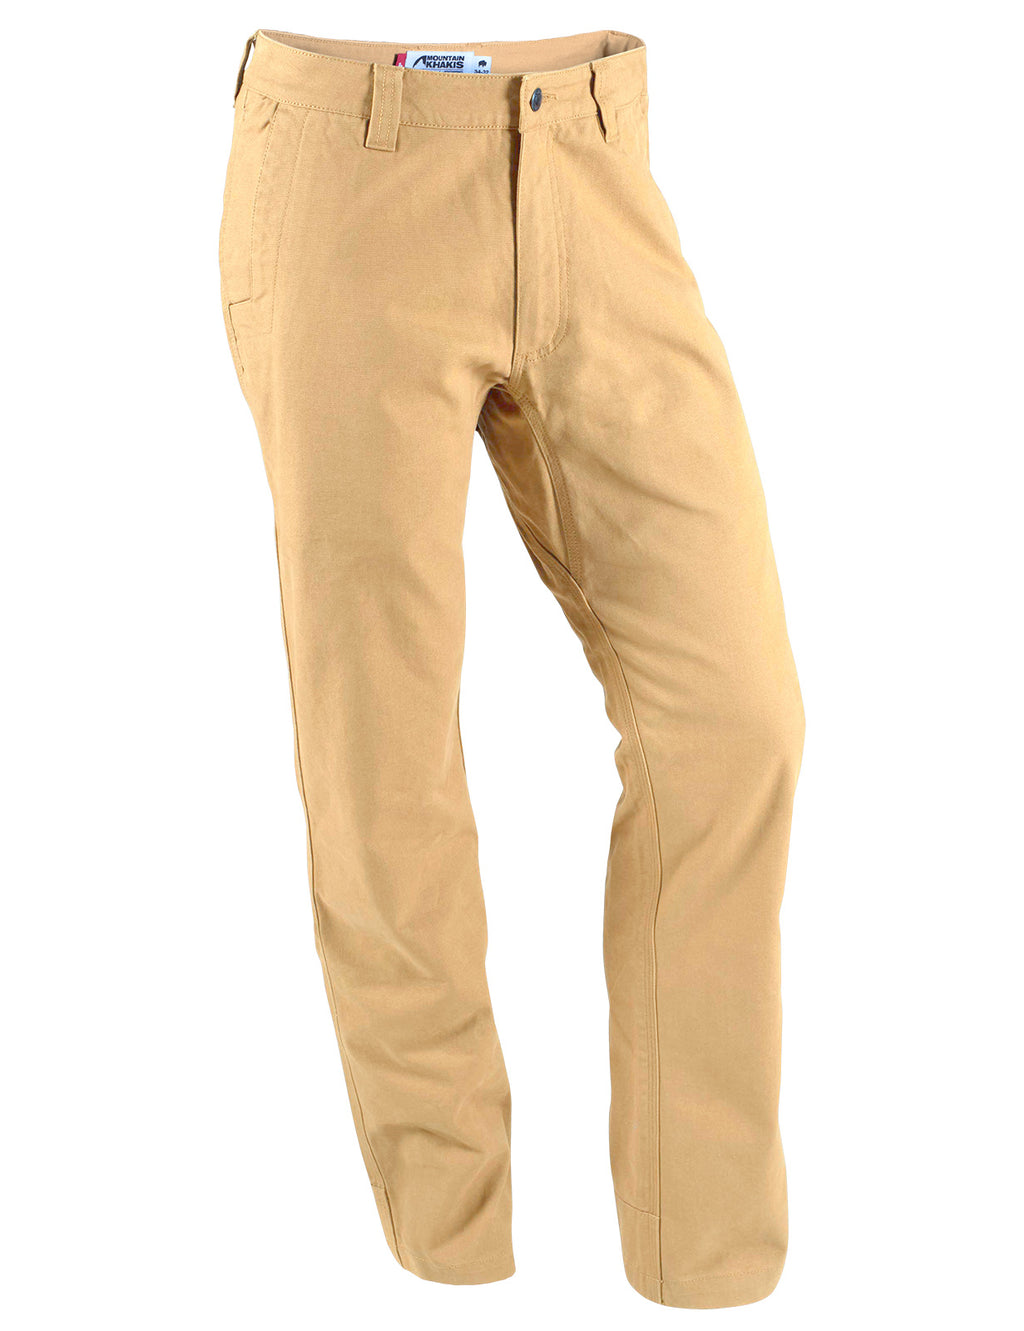 Men's Original Mountain Pant | Slim Fit | Men's rugged canvas organic cotton outdoor lifestyle pant for hiking, climbing, hunting, field work and more in Yellowstone khaki color.